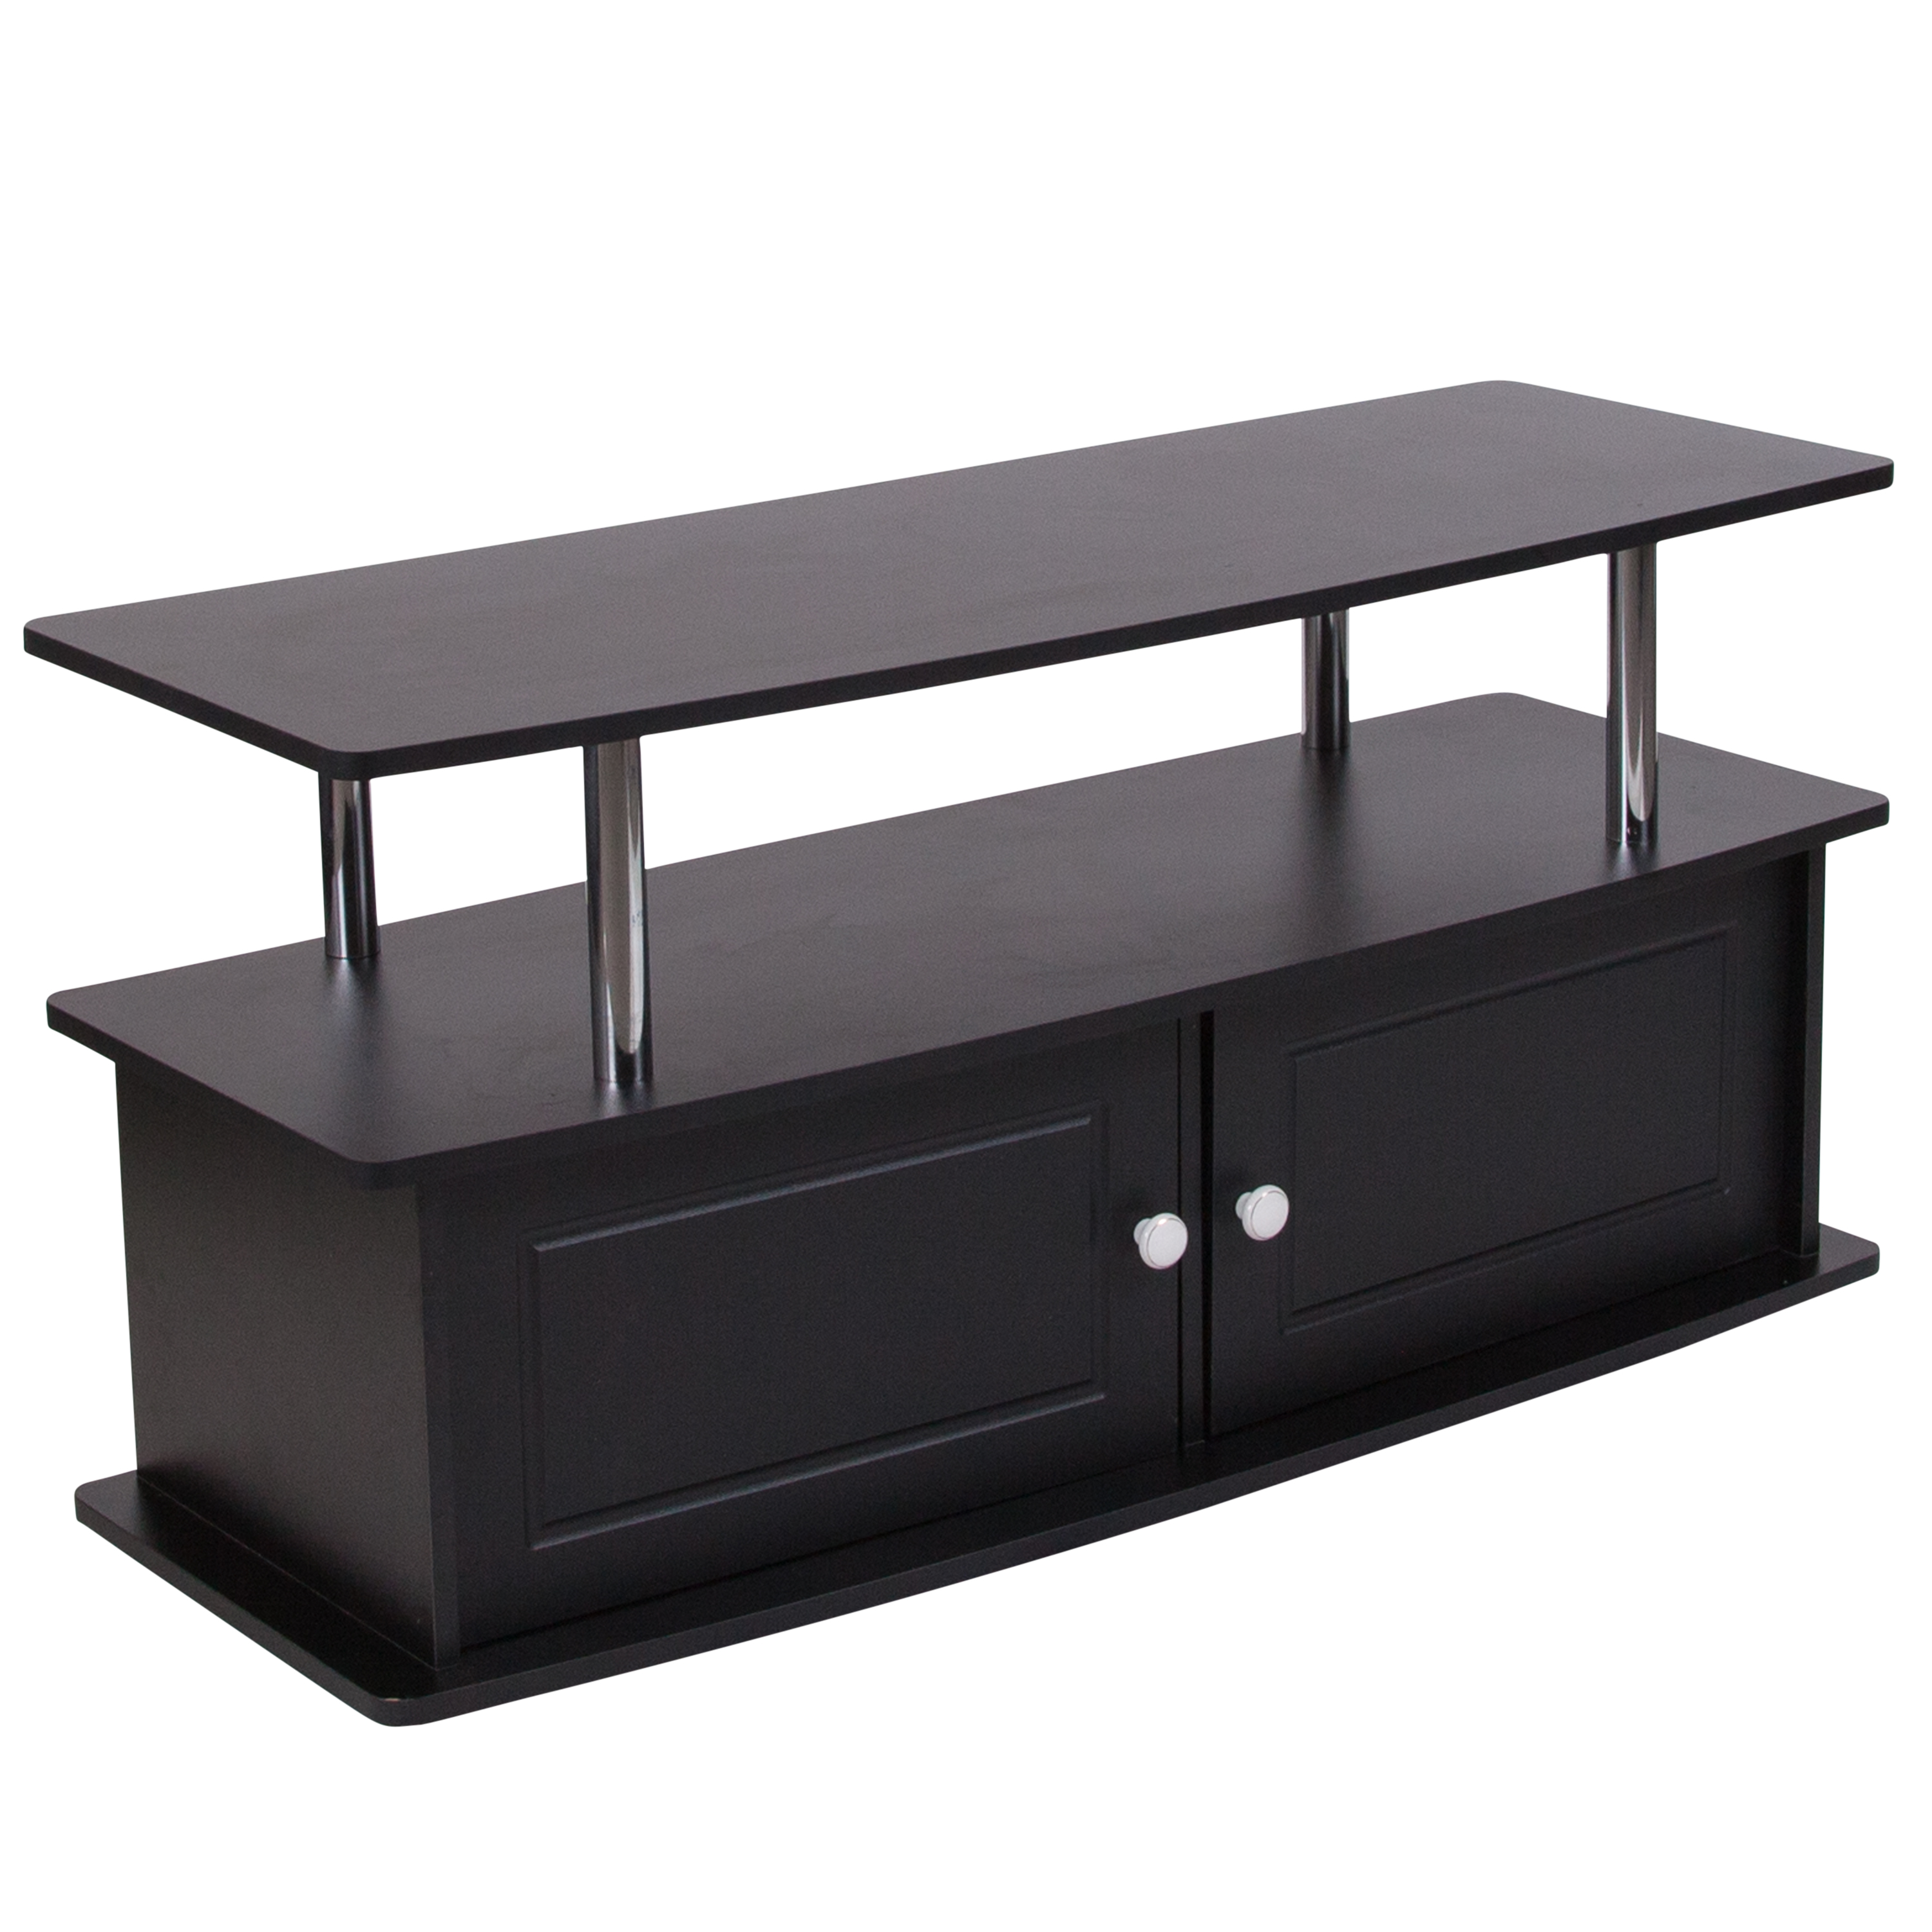 Flash Furniture Evanston Black TV Stand with Shelves, Cabinet and Stainless Steel Tubing